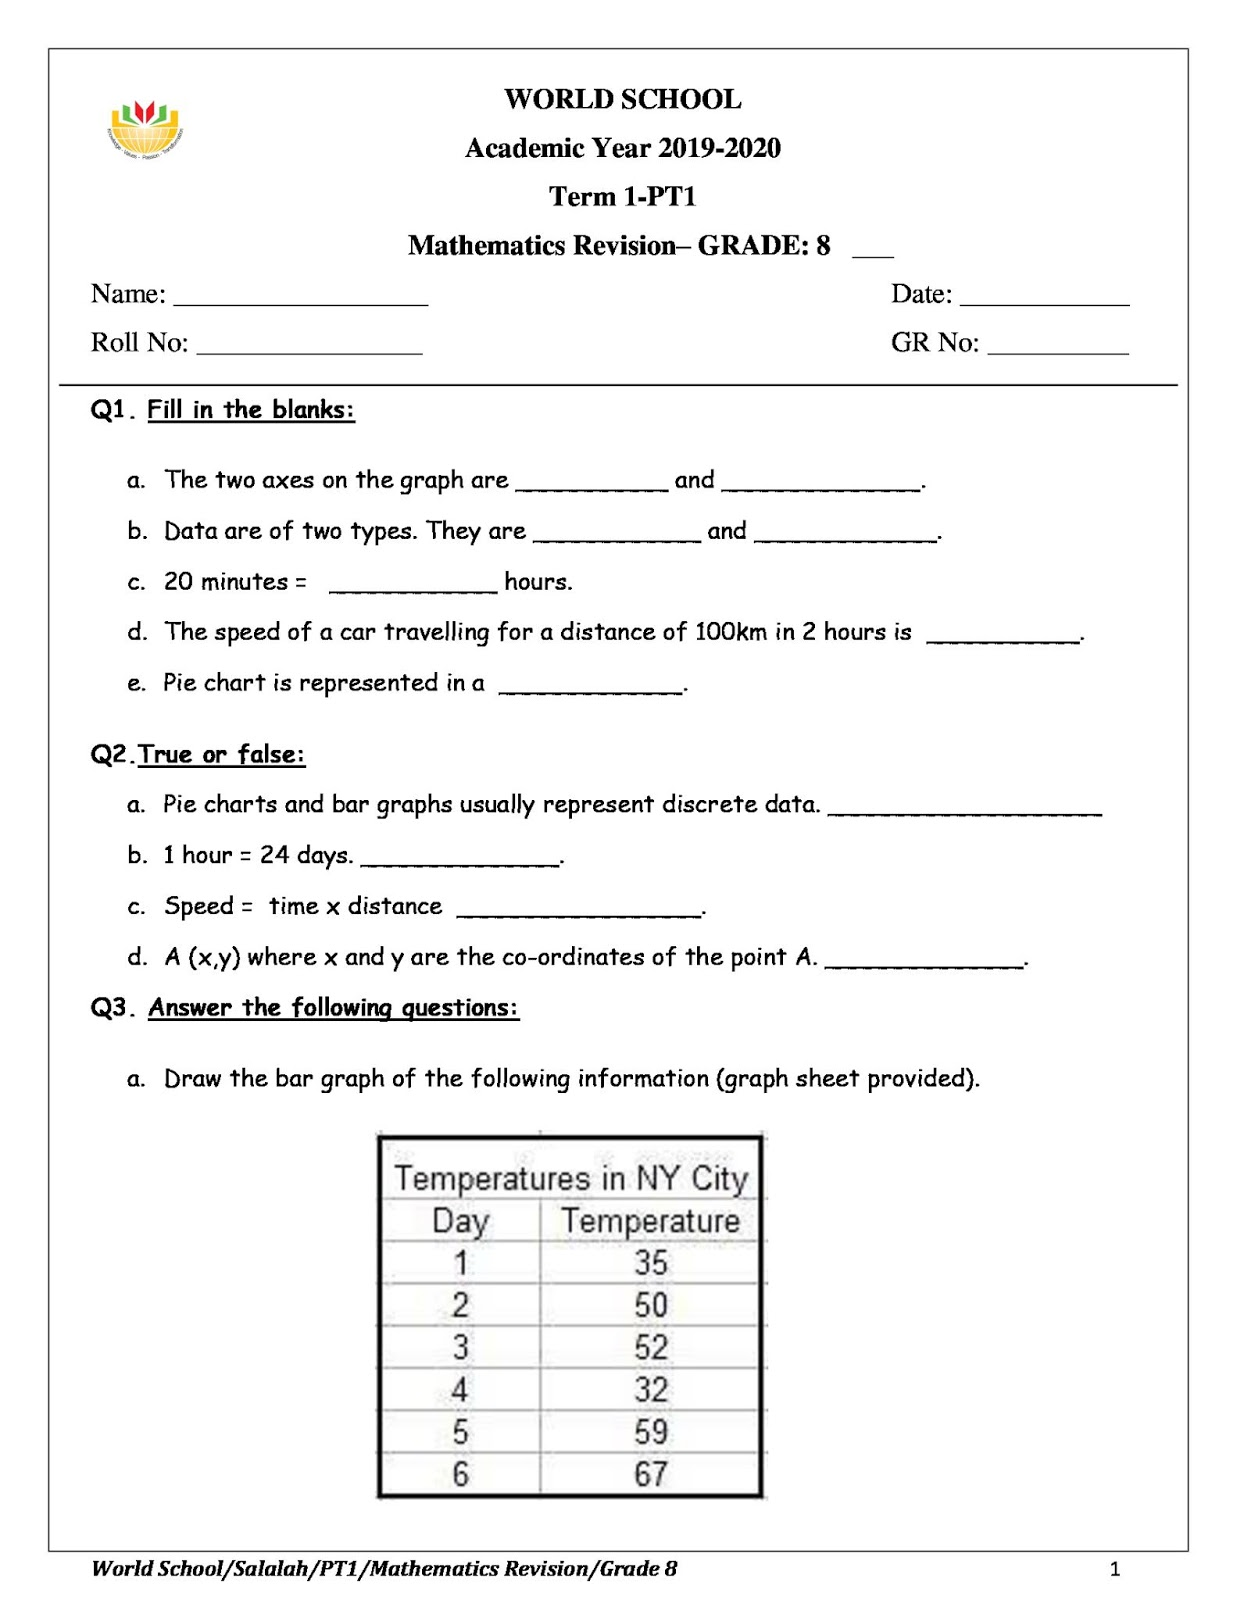 medium resolution of WORLD SCHOOL OMAN: Revision Worksheet for Grade 8 as on 03-10-2019